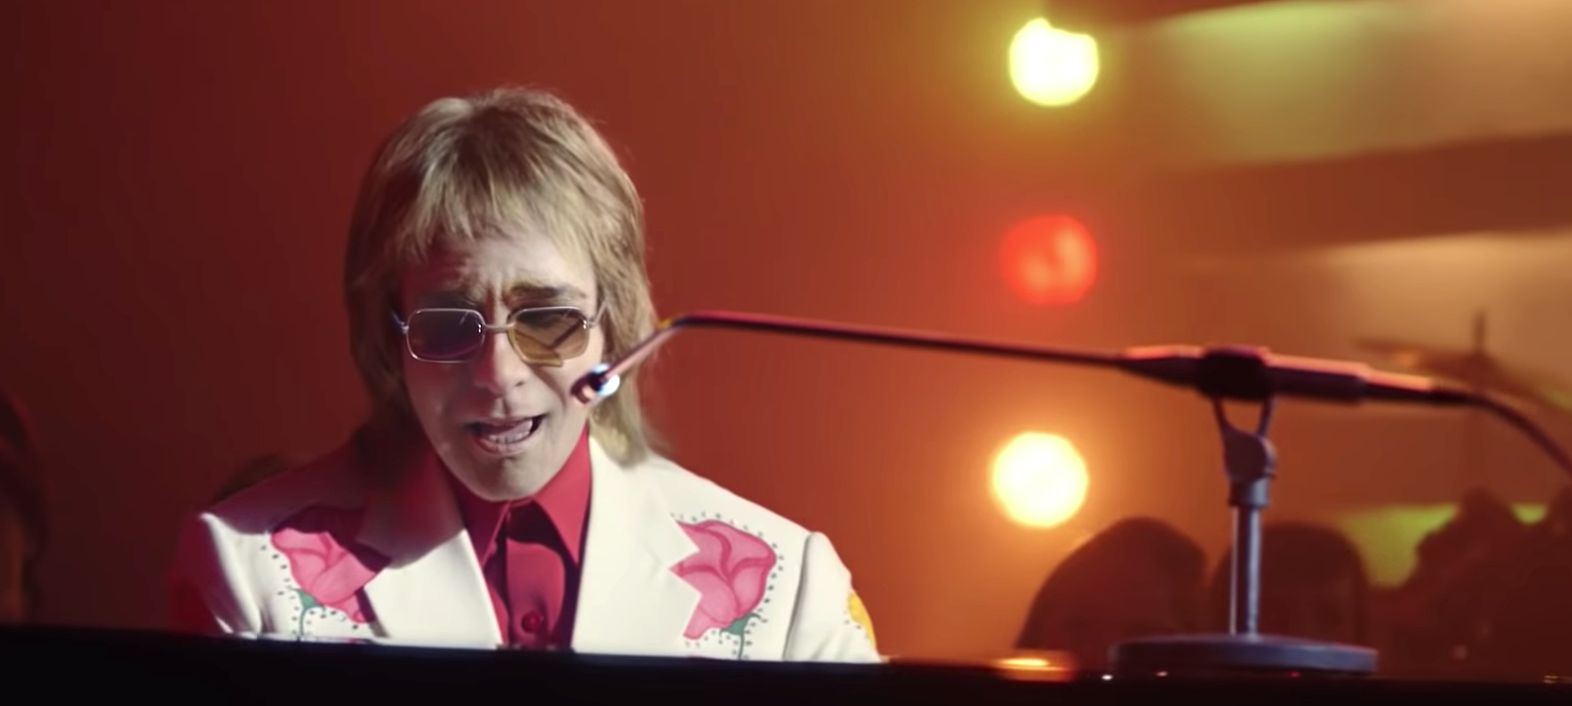 Elton John's Star Turn In Emotional Holiday Ad Misses The Mark For